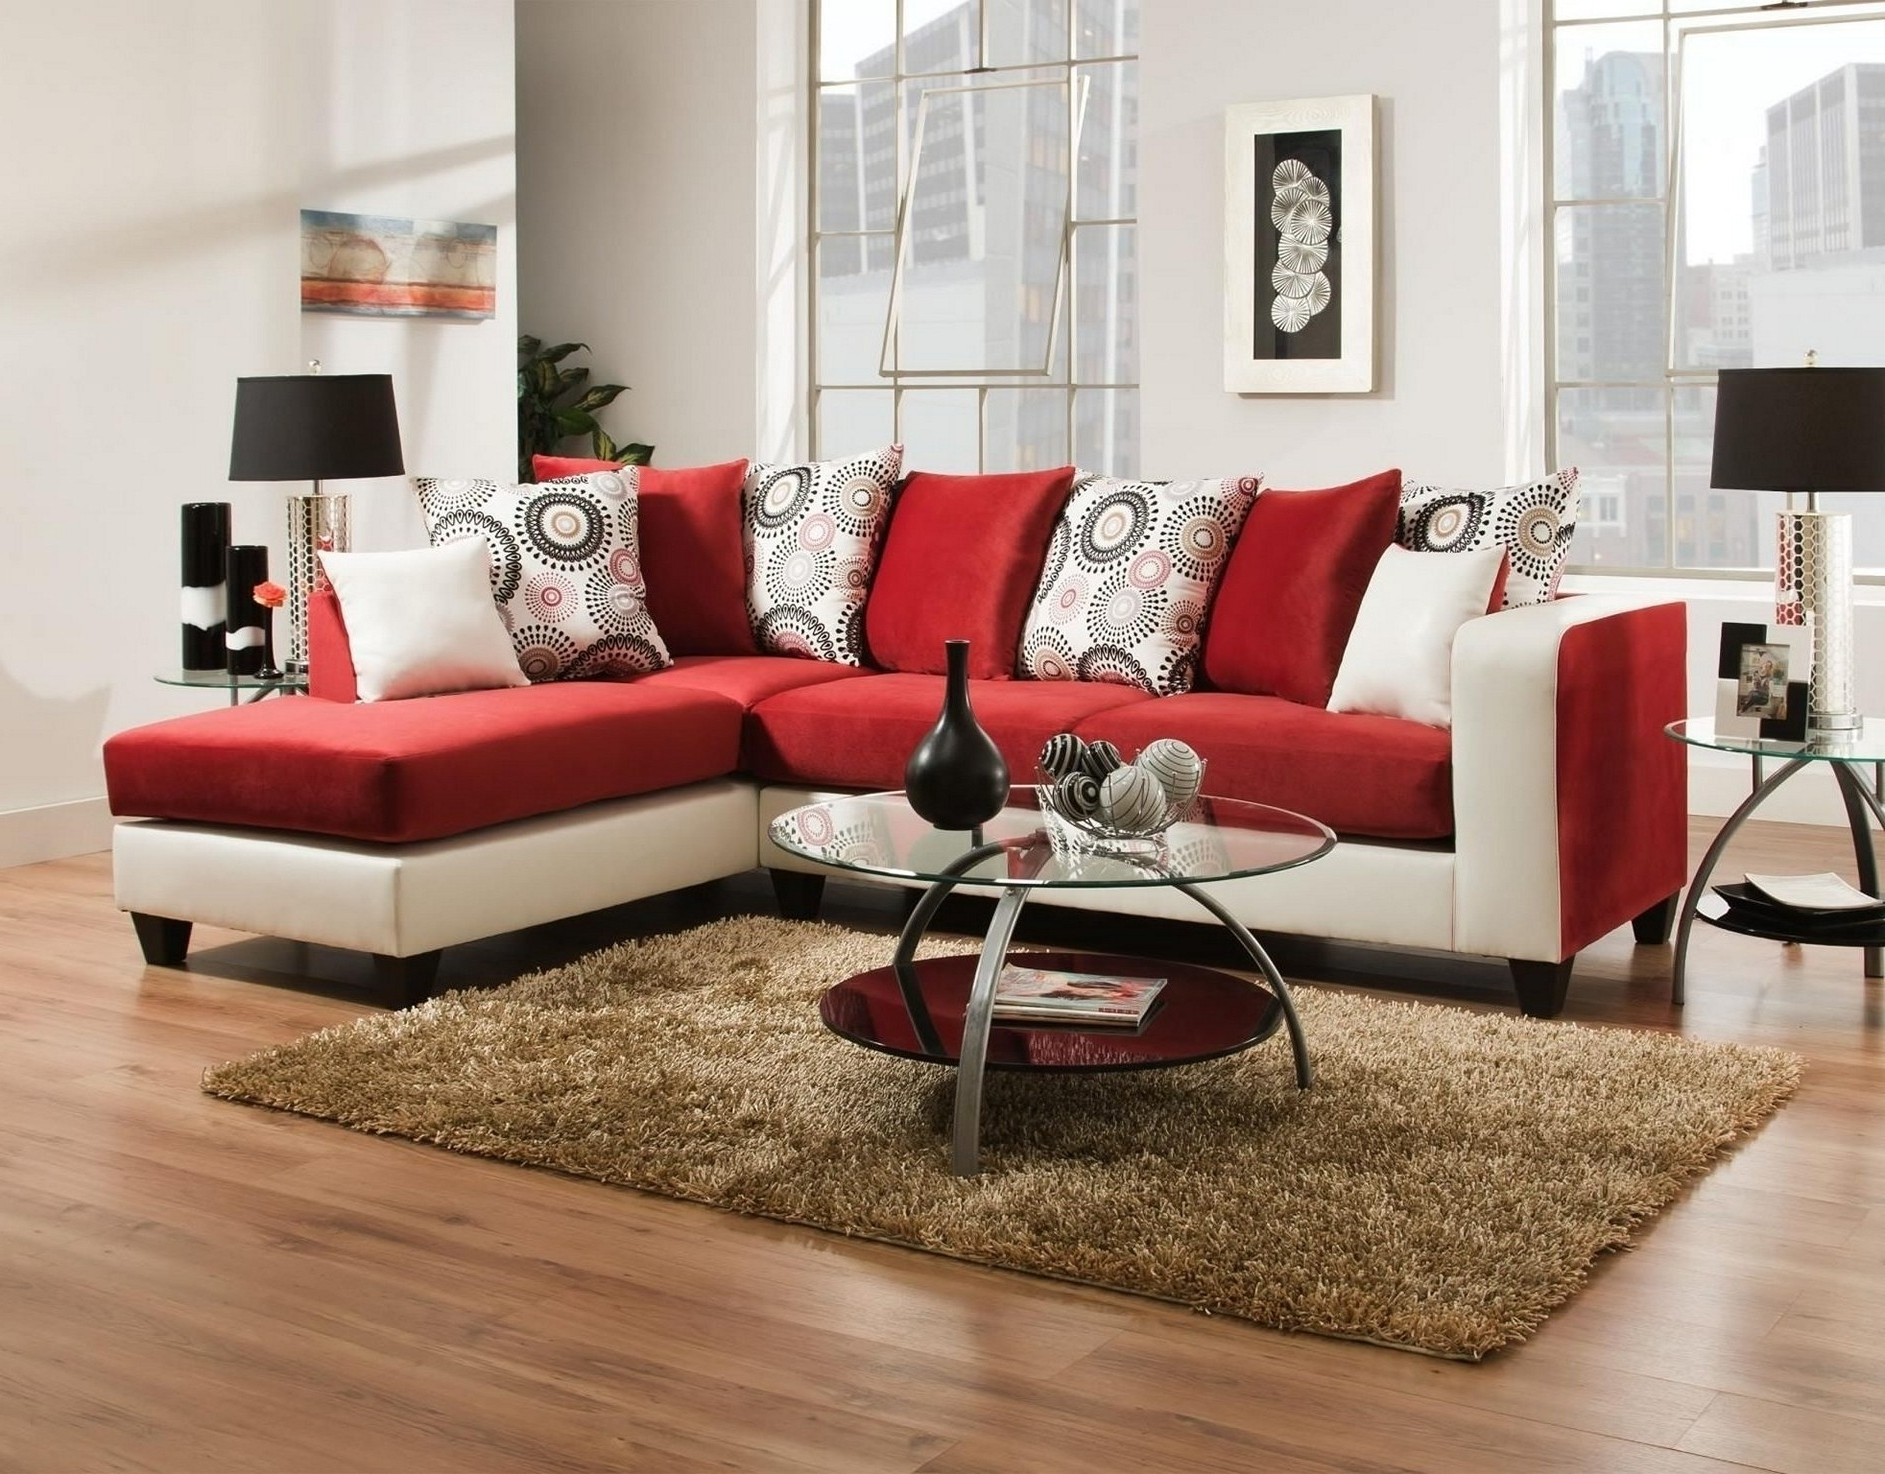 Most Popular Sectional Sofas Under 400 Throughout Sofas : Cheap Sofa Beds Leather Sofa Set Cheap Leather Sofas Cheap (View 8 of 20)